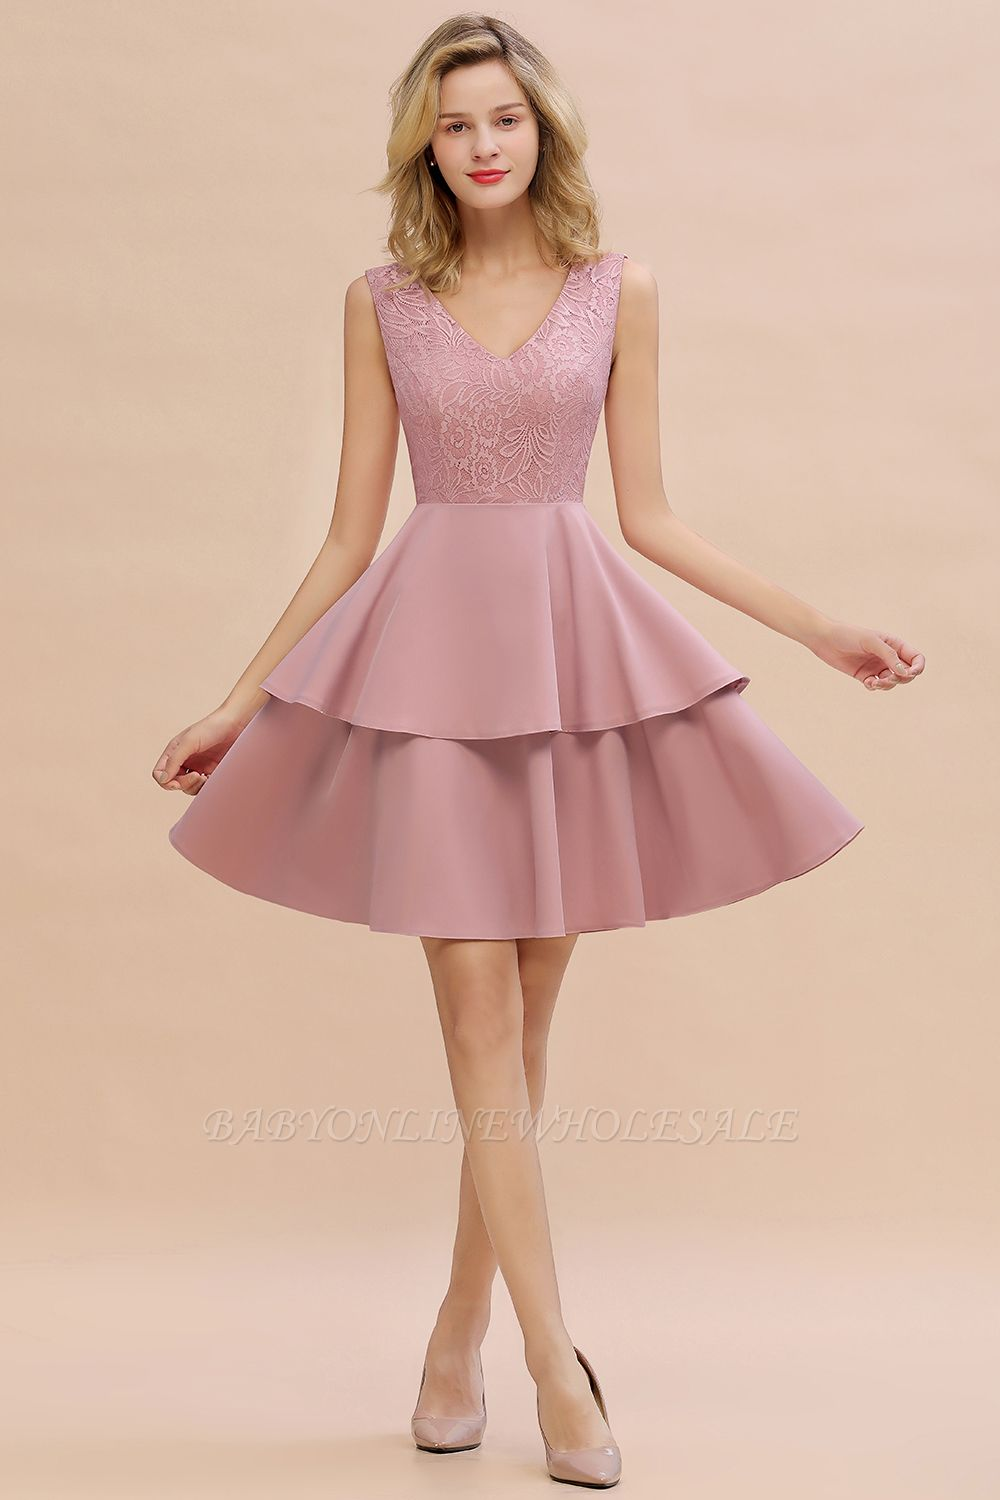 Sexy V-neck V-back Knee Length Homecoming Dresses with Ruffle Skirt | Burgundy, Navy, Pink Dress for Homecoming